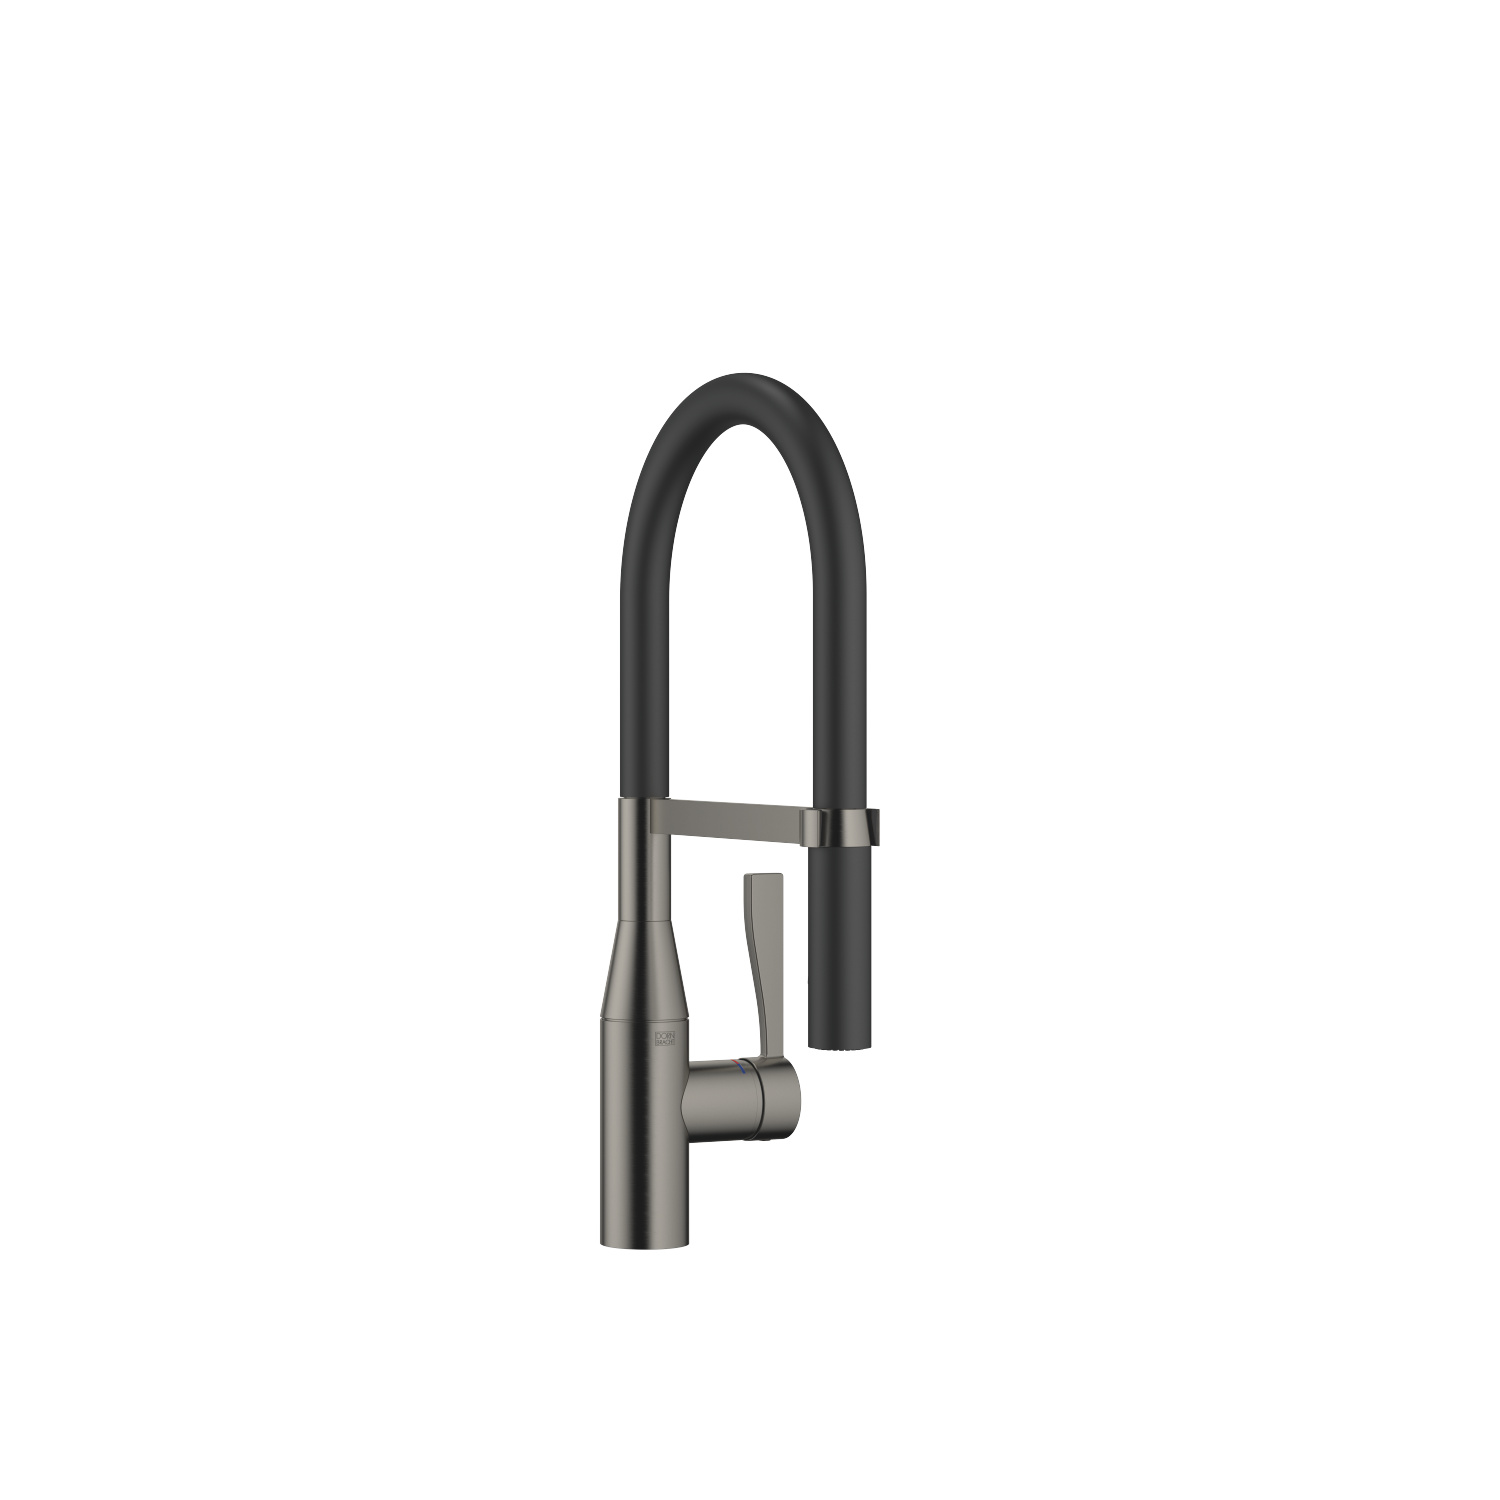 Profi single-lever mixer - Dark Platinum matt